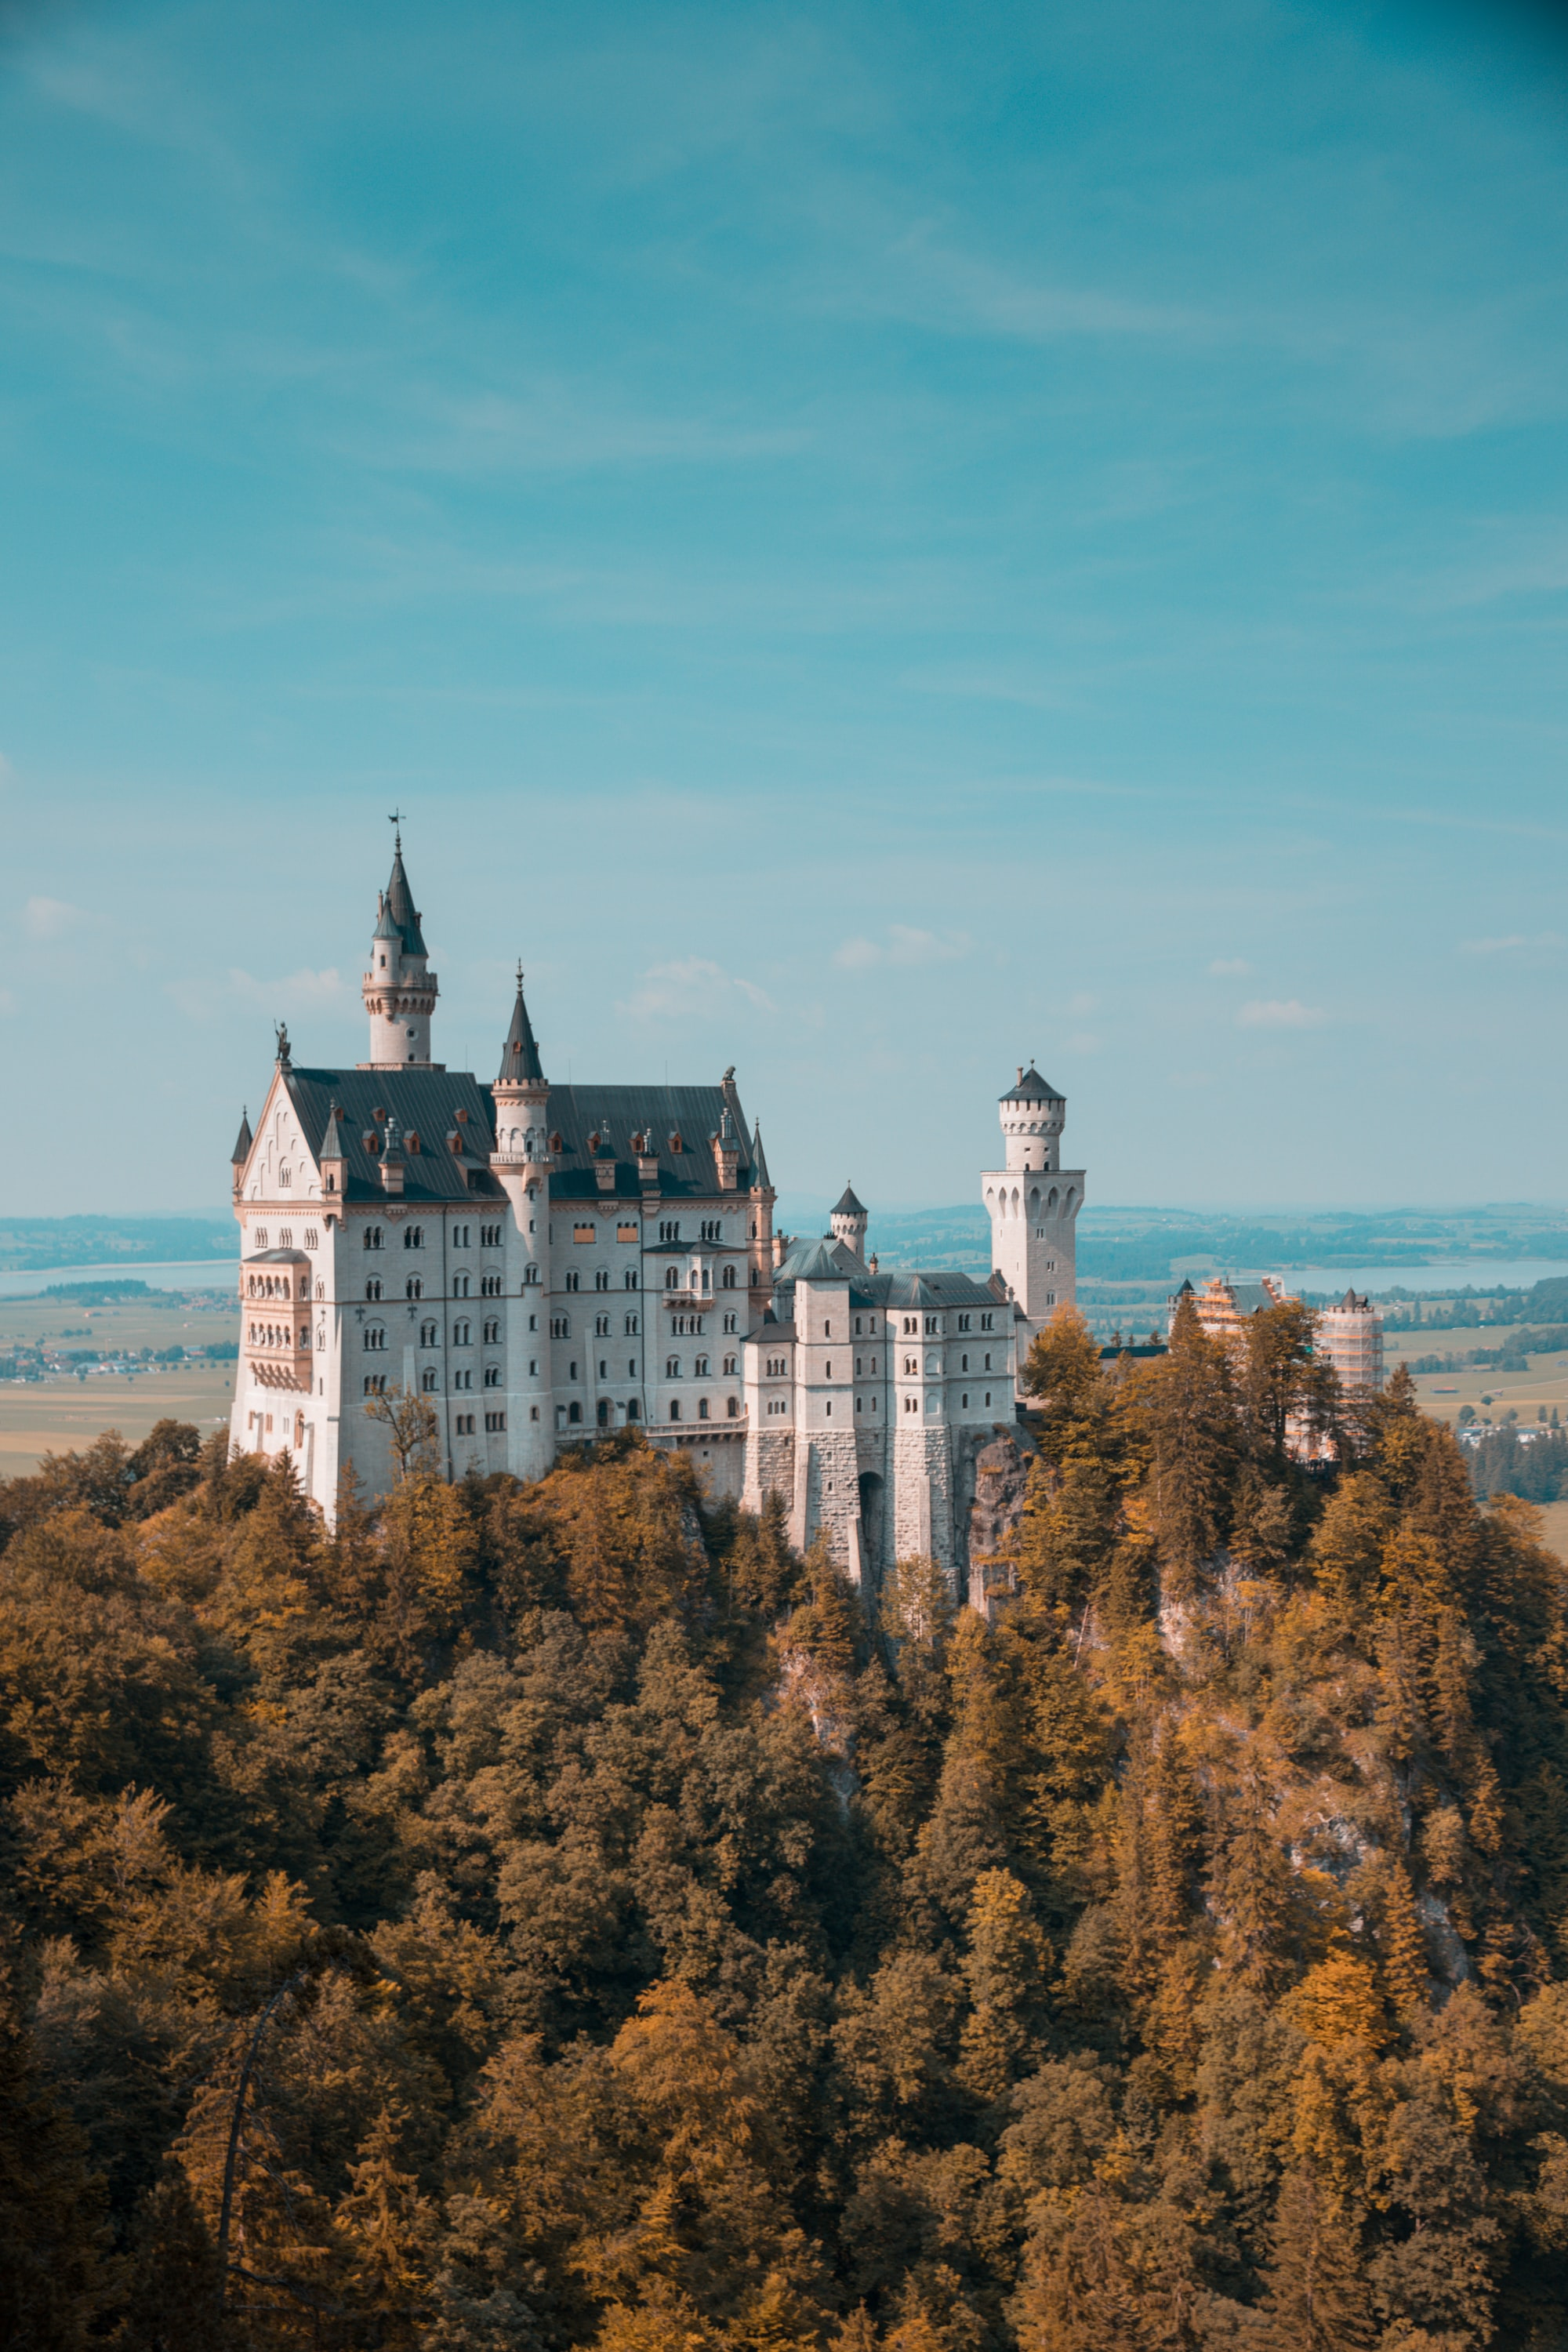 Three days of castle hopping in the land of beer, Bavaria